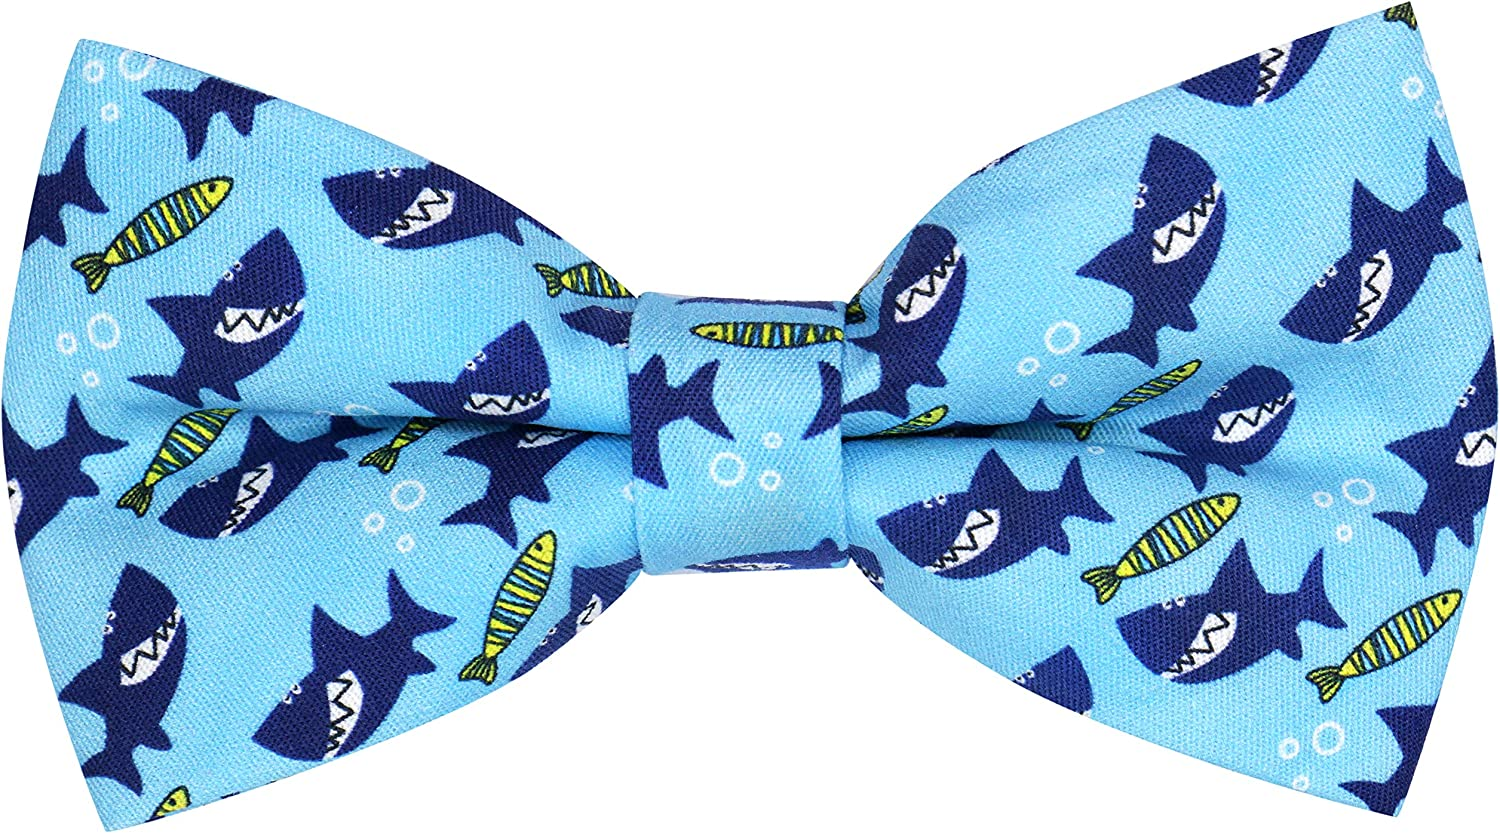 OCIA Funny Pattern Pre-tied Bow Tie Cotton Adjustable Bowtie for Mens & Boys - Various Patterns